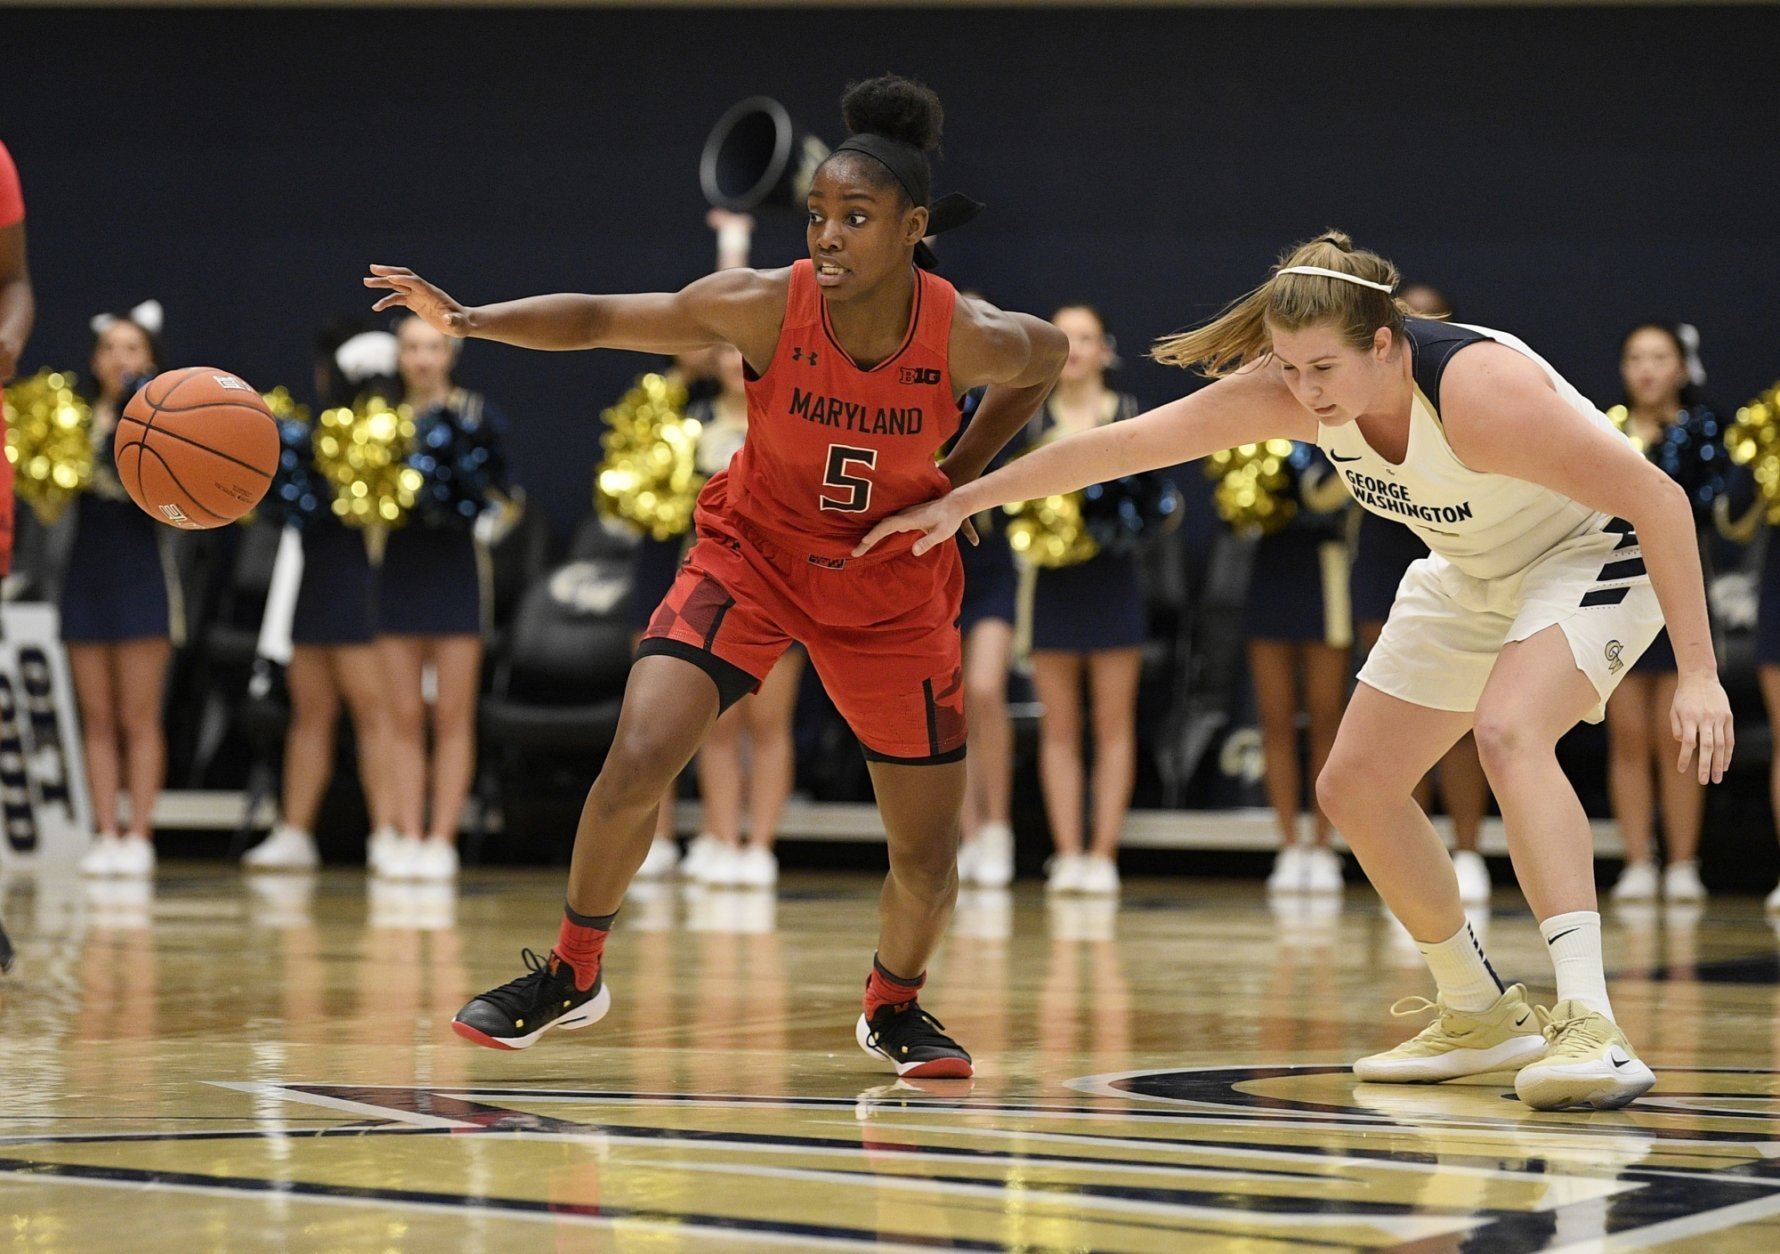 Maryland guard Kaila Charles (5) chases the loose ball against George Washington forward Kelsi Mahoney, right, during the first half of an NCAA college basketball game, Wednesday, Nov. 14, 2018, in Washington. (AP Photo/Nick Wass)